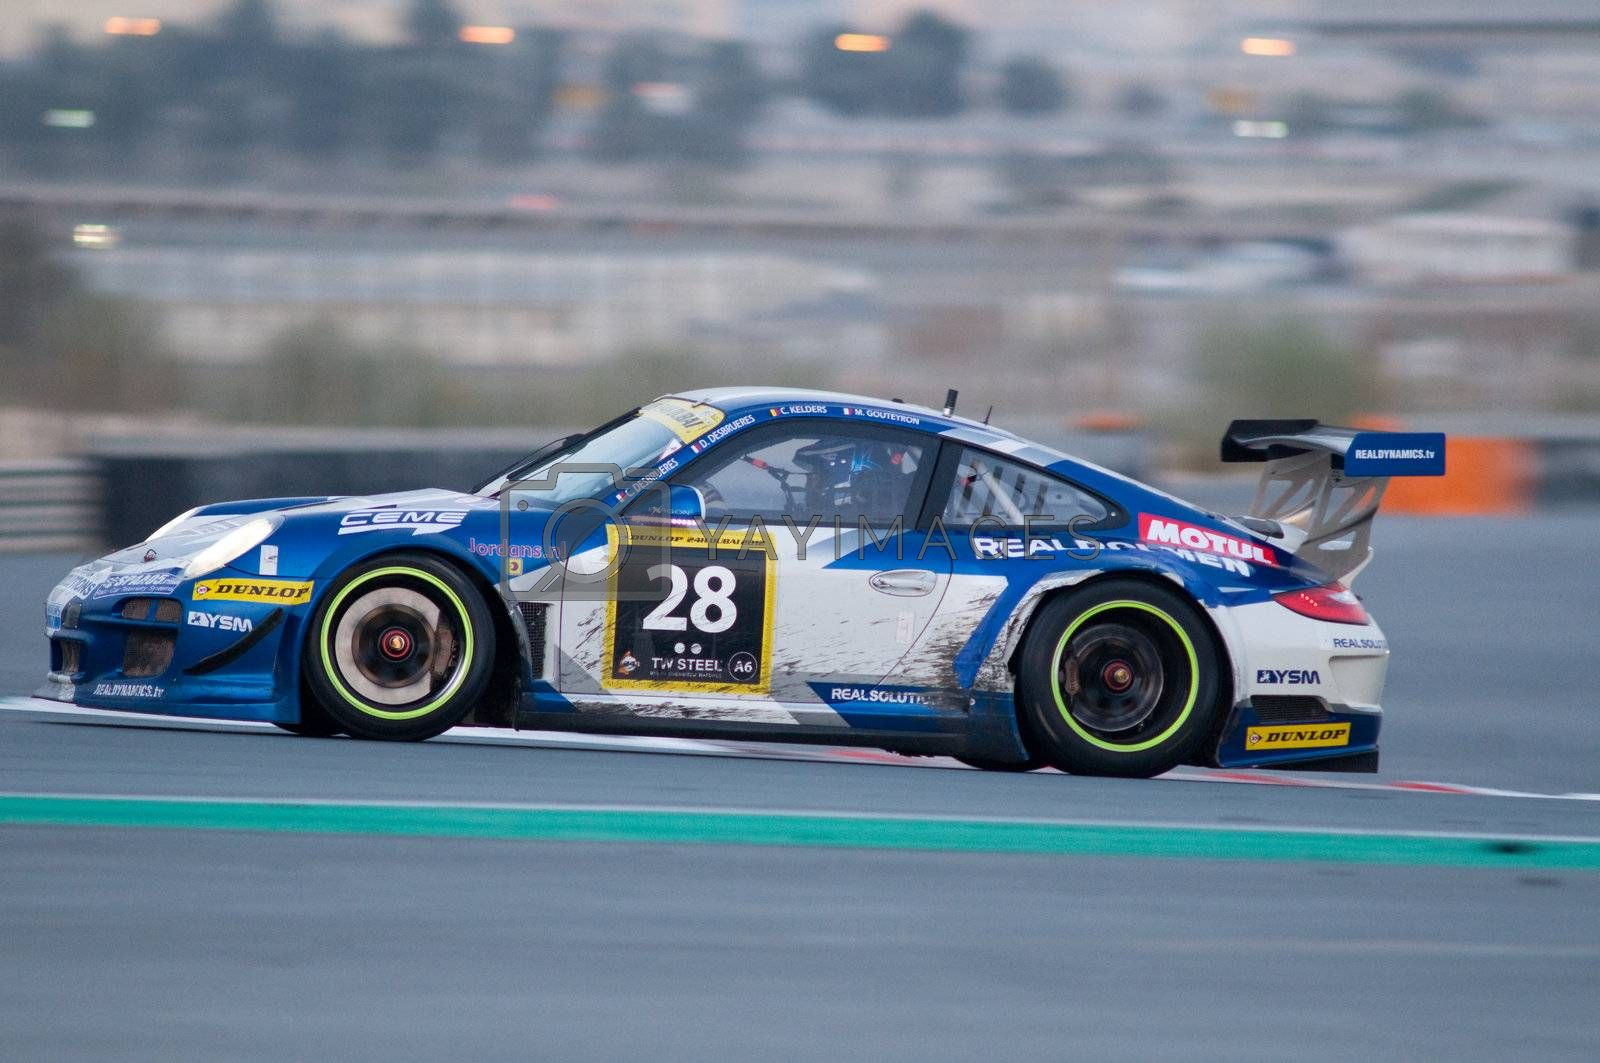 DUBAI - JANUARY 14: Car 28, a Porsche 997 GT3 R, in the morning during the 2012 Dunlop 24 Hour Race at Dubai Autodrome on January 14, 2012.